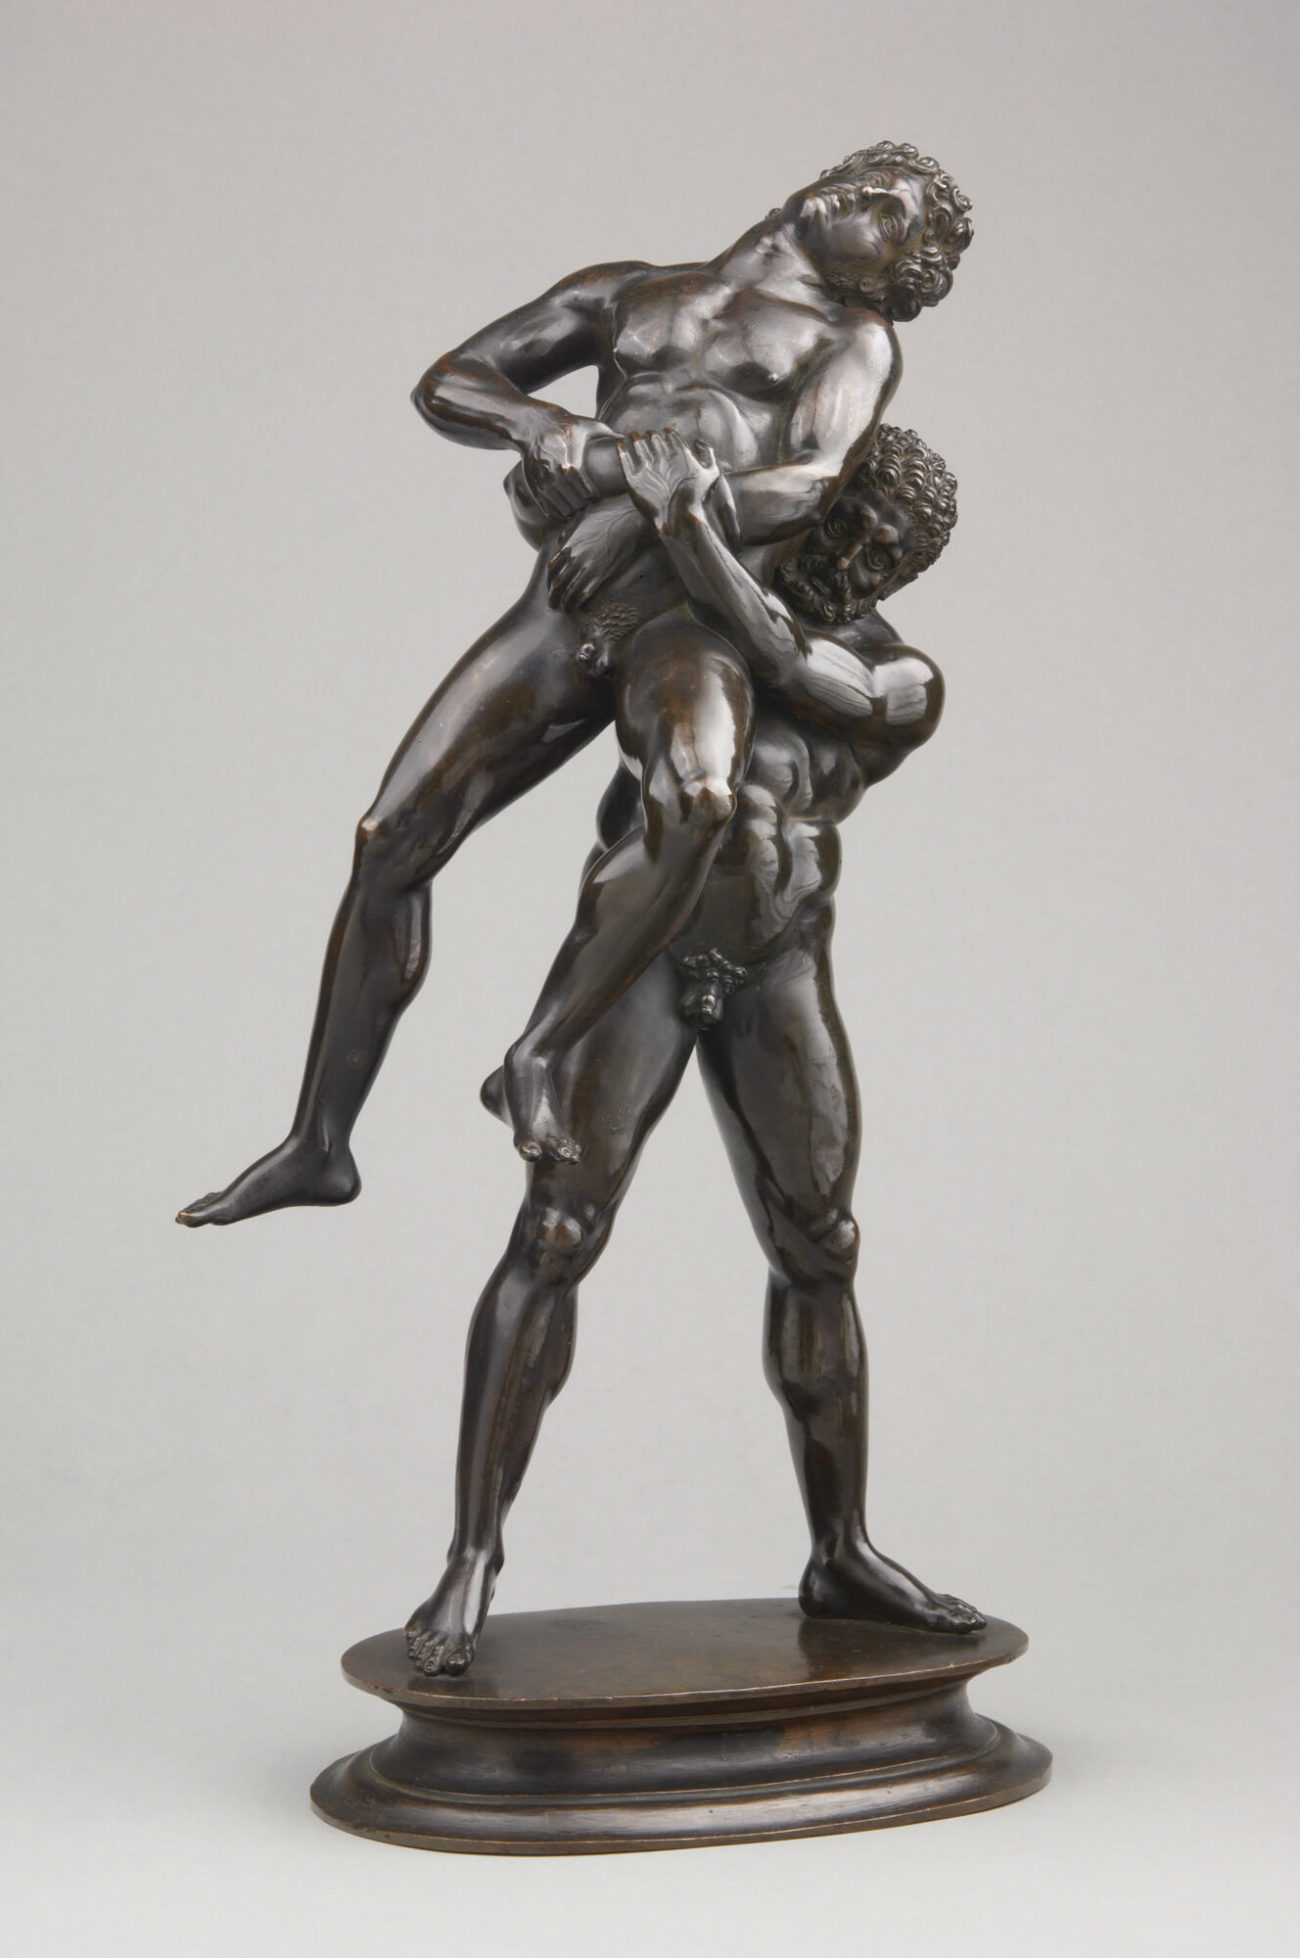 Antico, Hercules and Antaeus, c. 1519, bronze, 17 inches high (KHM-Museumsverband, Kunstkammer. KHM-Museumsverband / Kunsthistorisches Museum, Vienna)